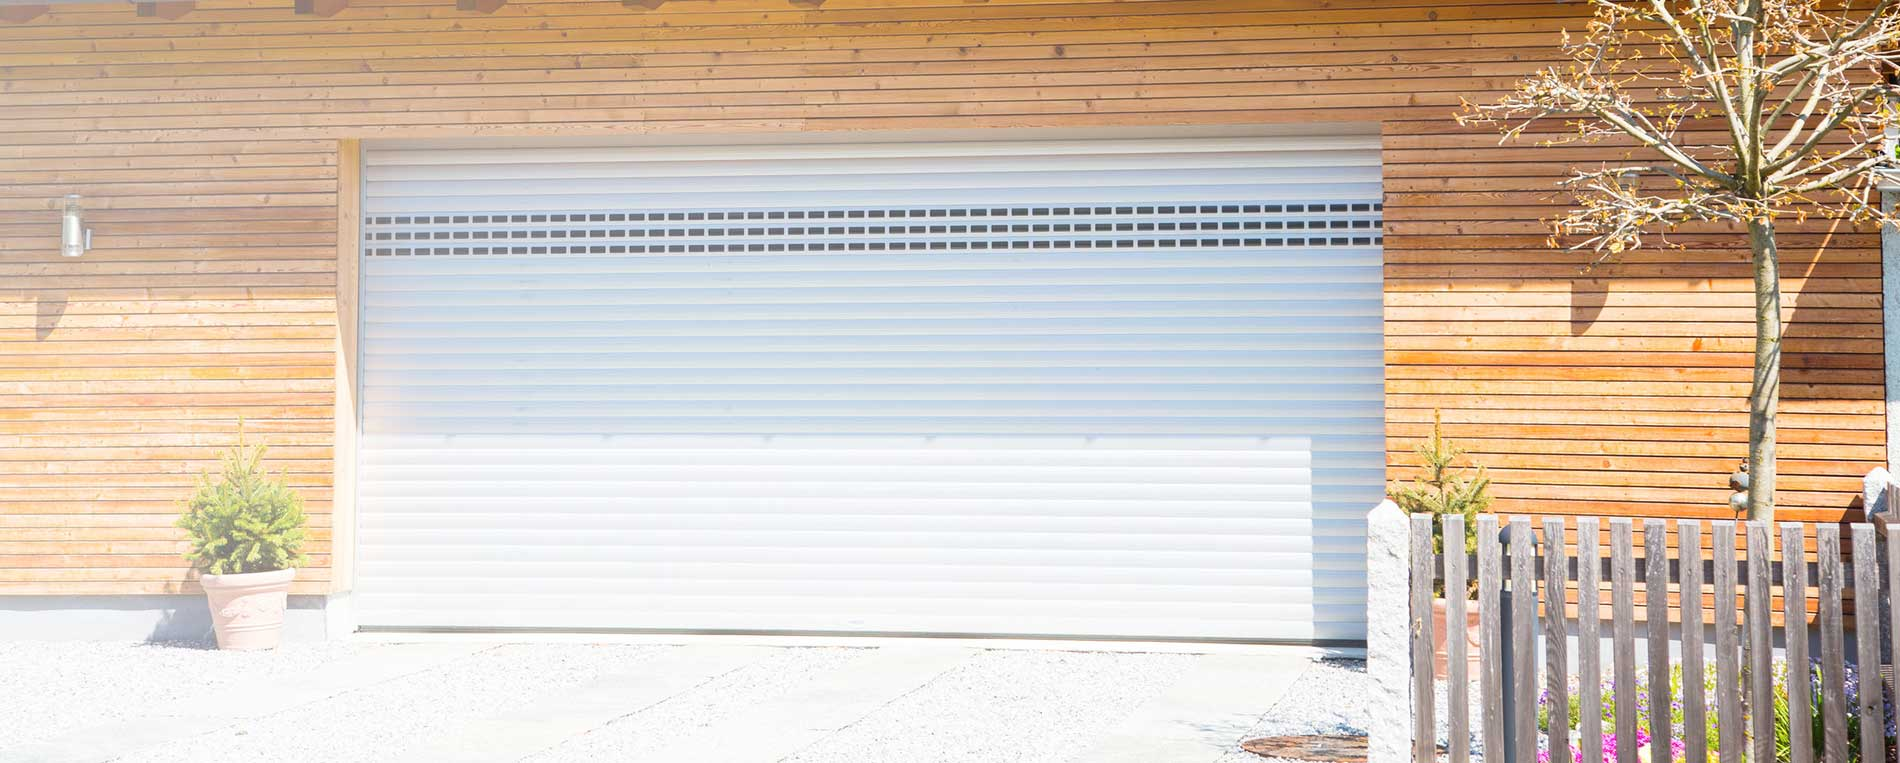 Garage Door Repair Near Me | River Forest IL